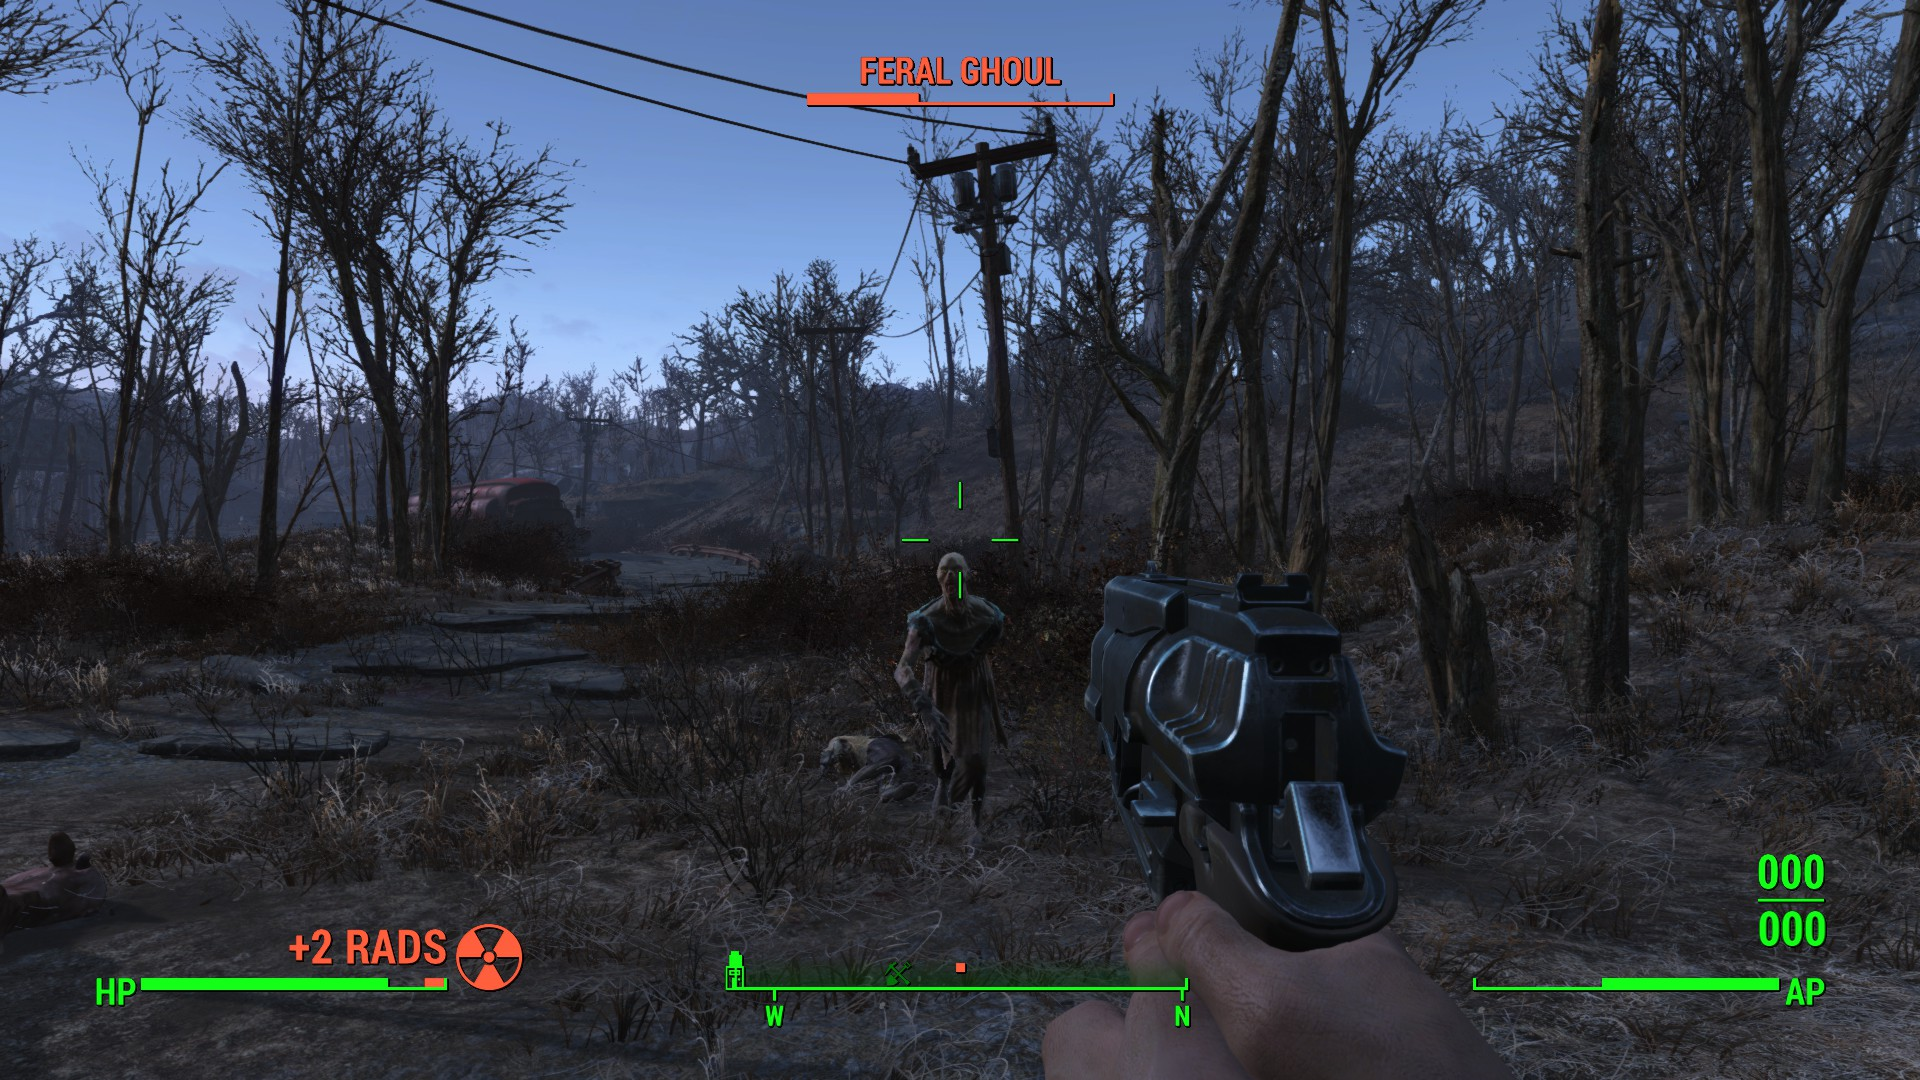 Fallout 4 Screenshots Leaked From PS4 Version Show Various